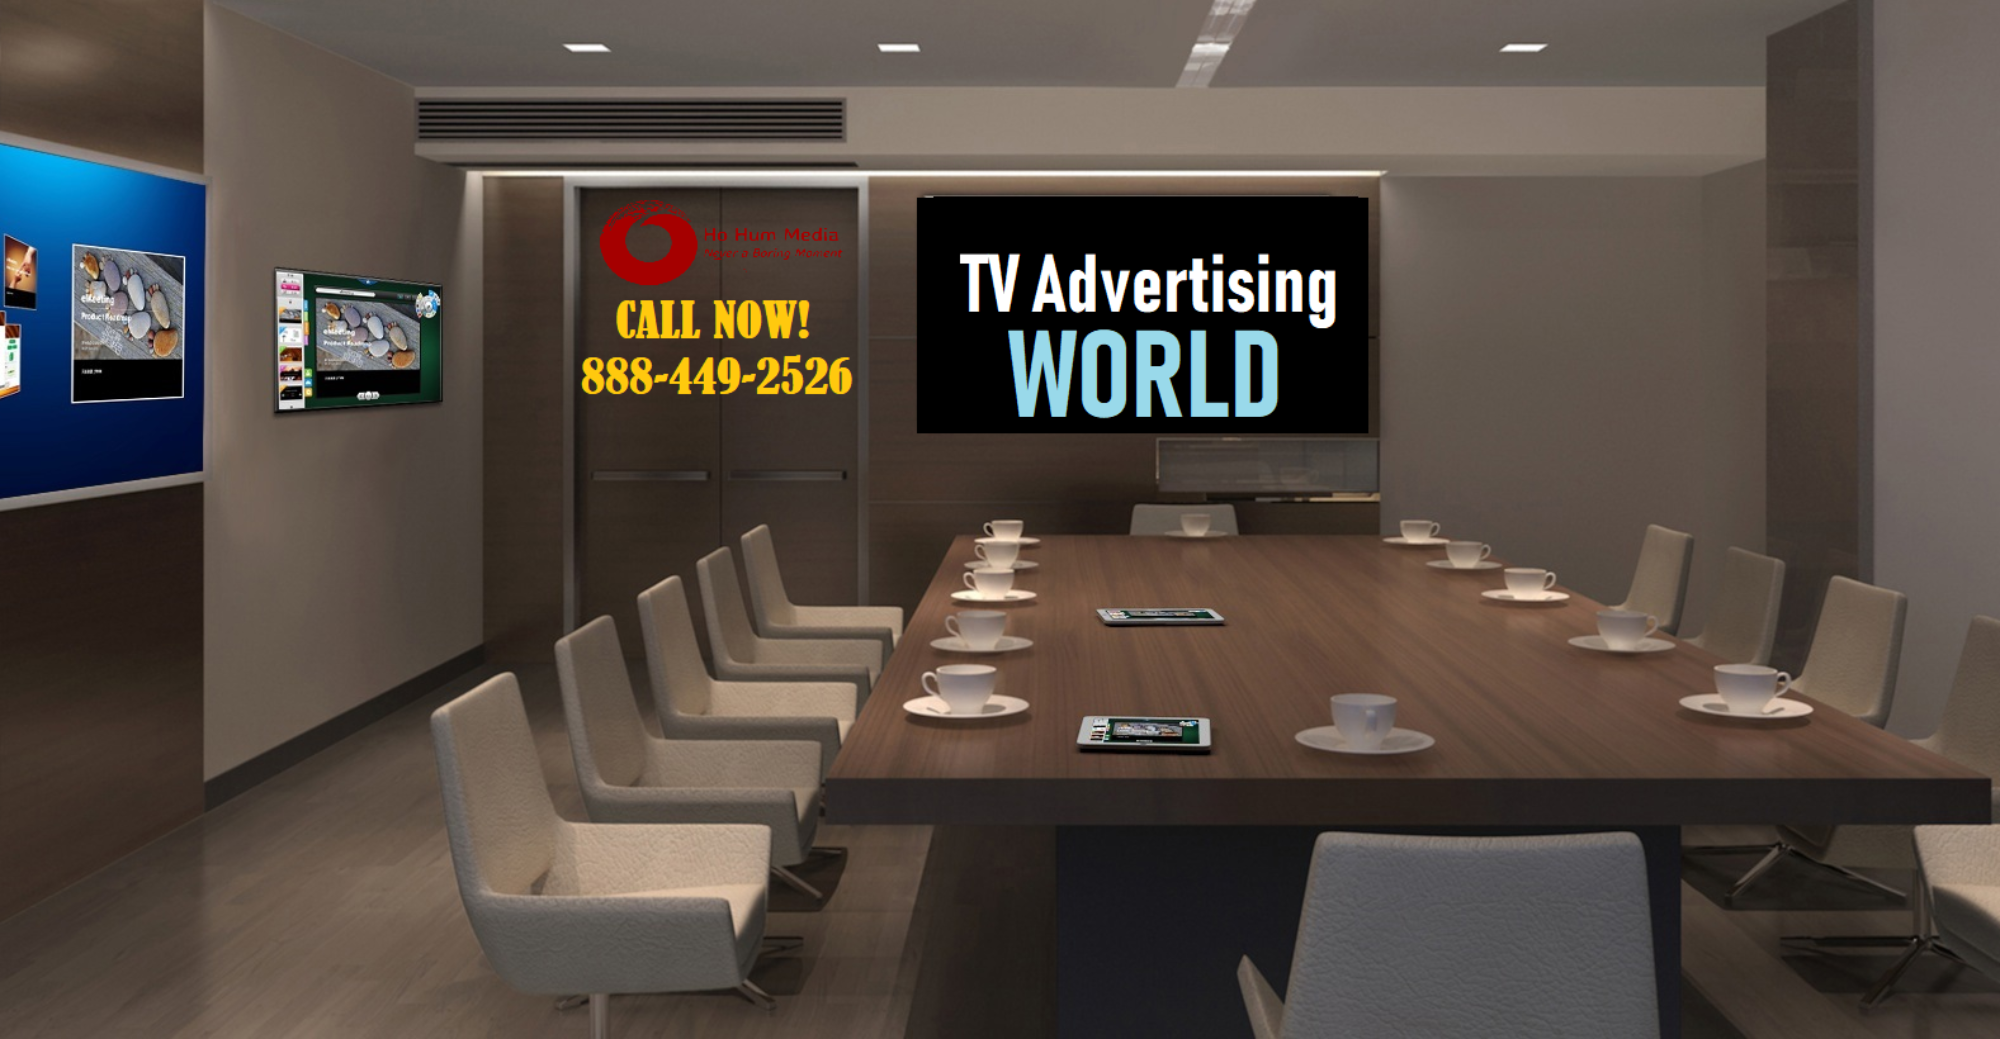 TV Advertising World | 888-449-2526